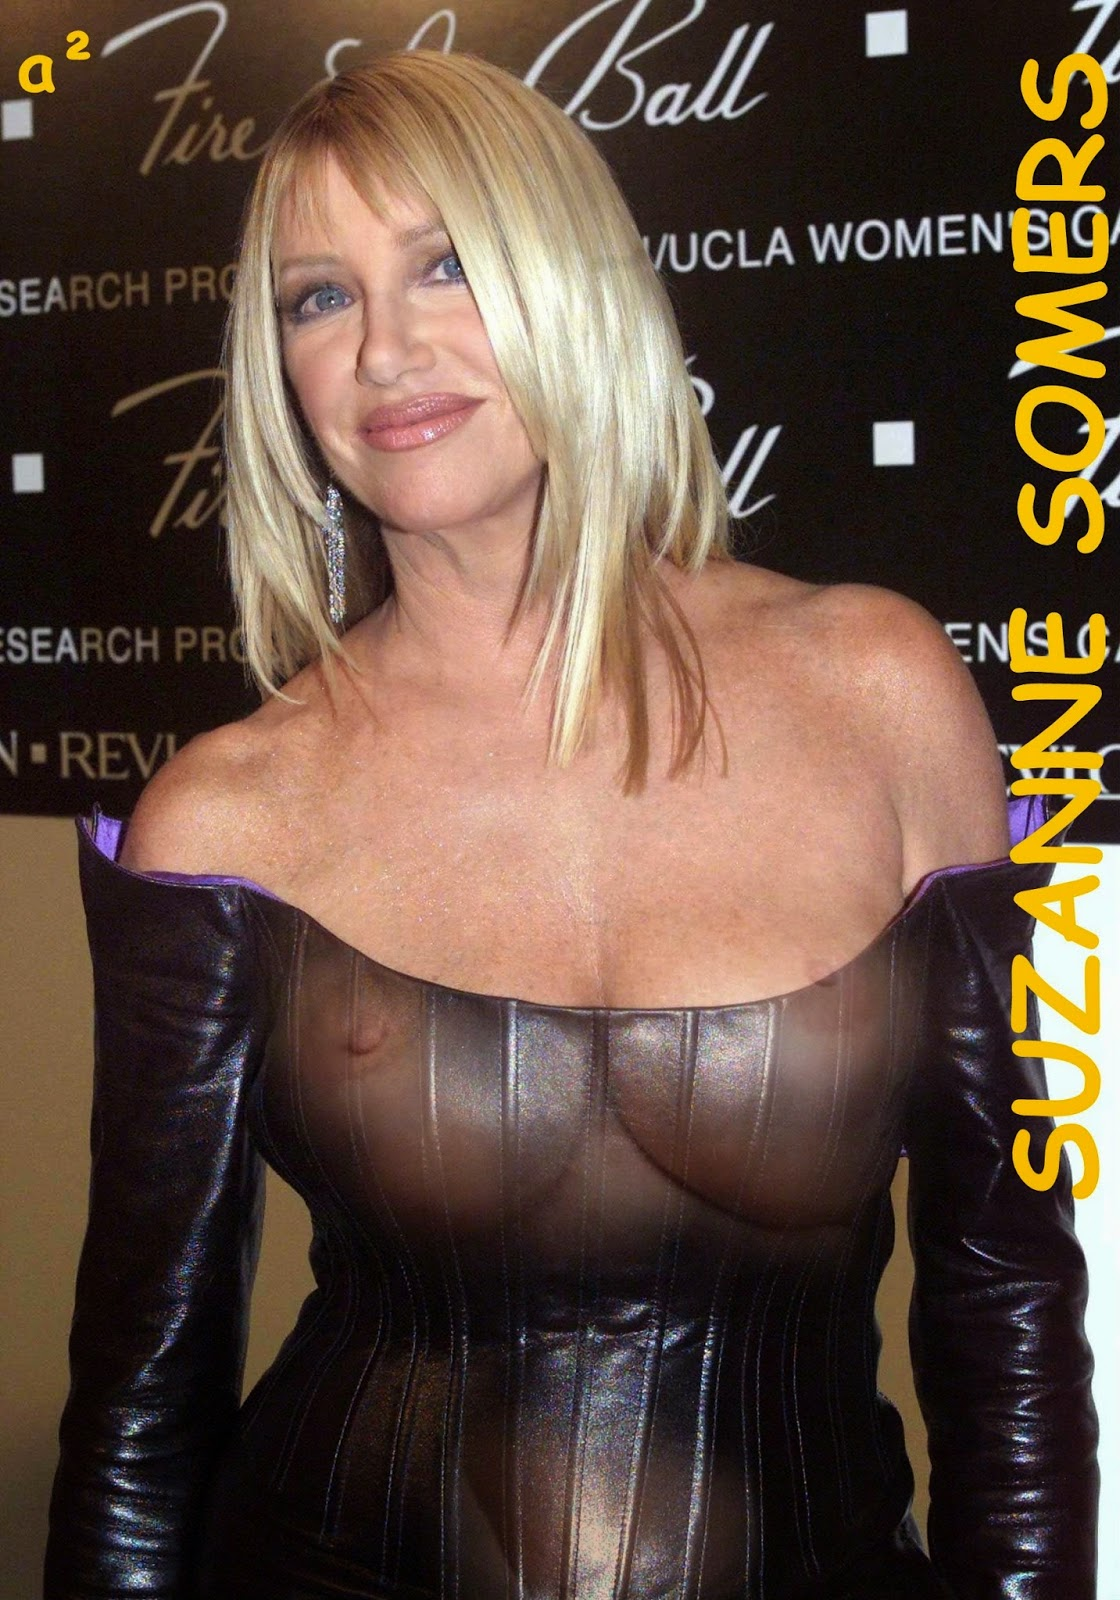 Have Amateur pornstar suzanne somers opinion you